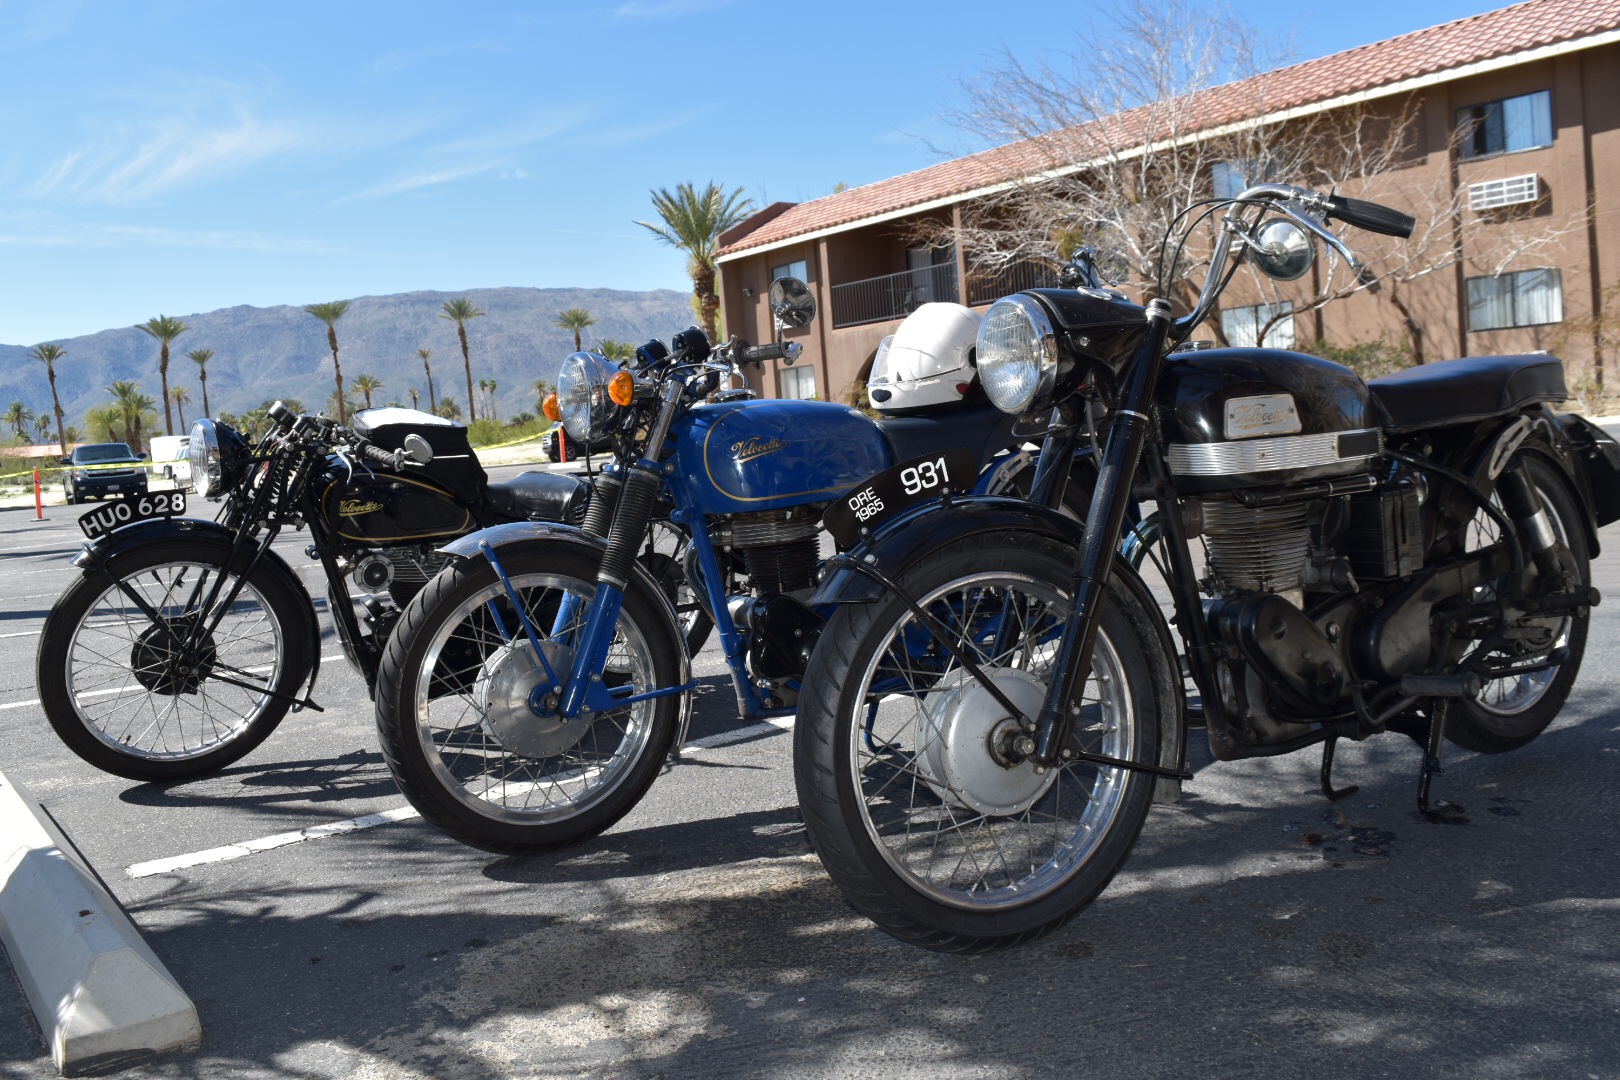 Trio of Velocette motorcycles